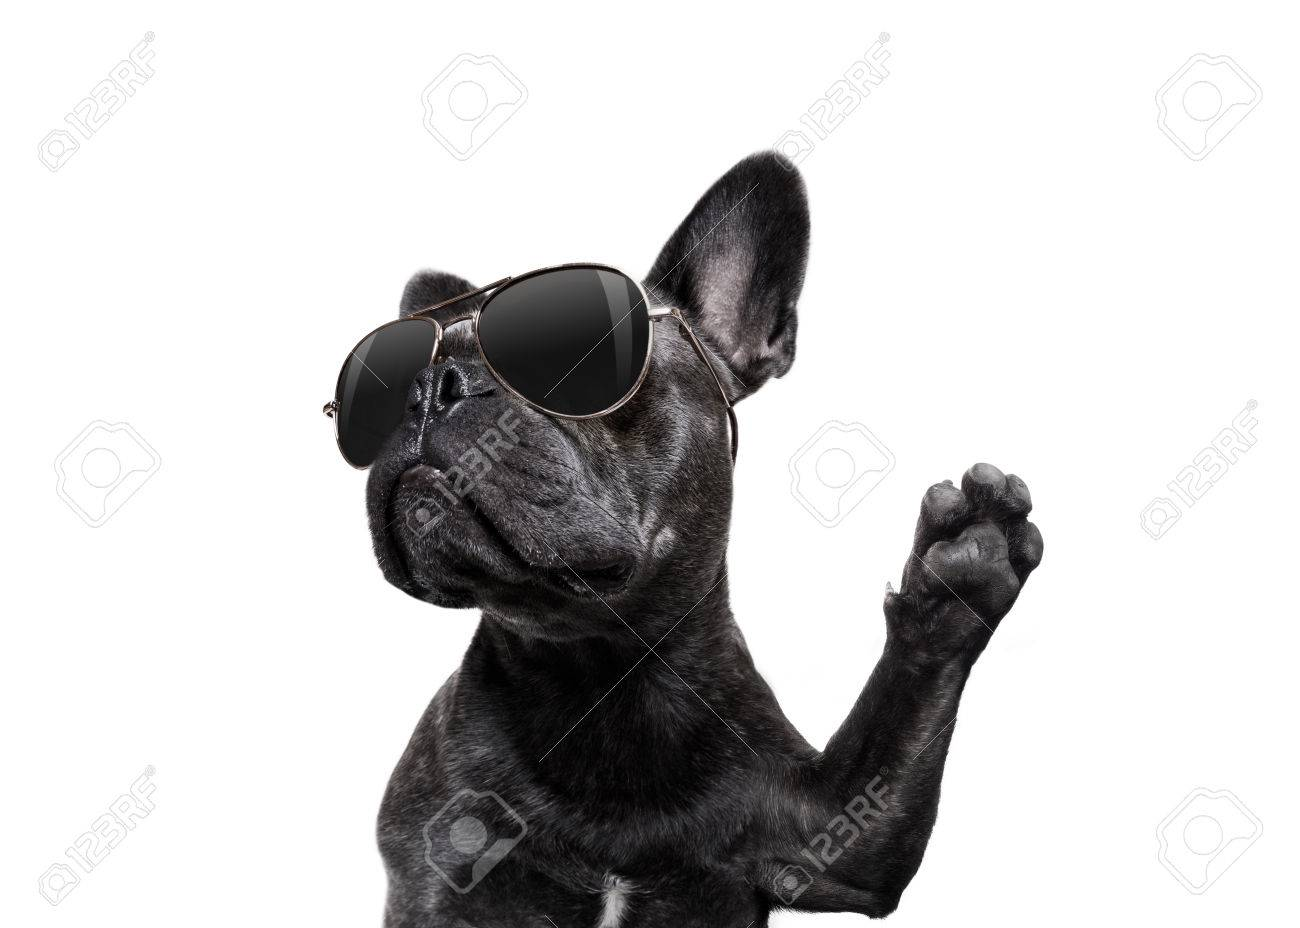 cool trendy posing french bulldog with sunglasses looking up like a model , isolated on white background, with paw high five - 87153630